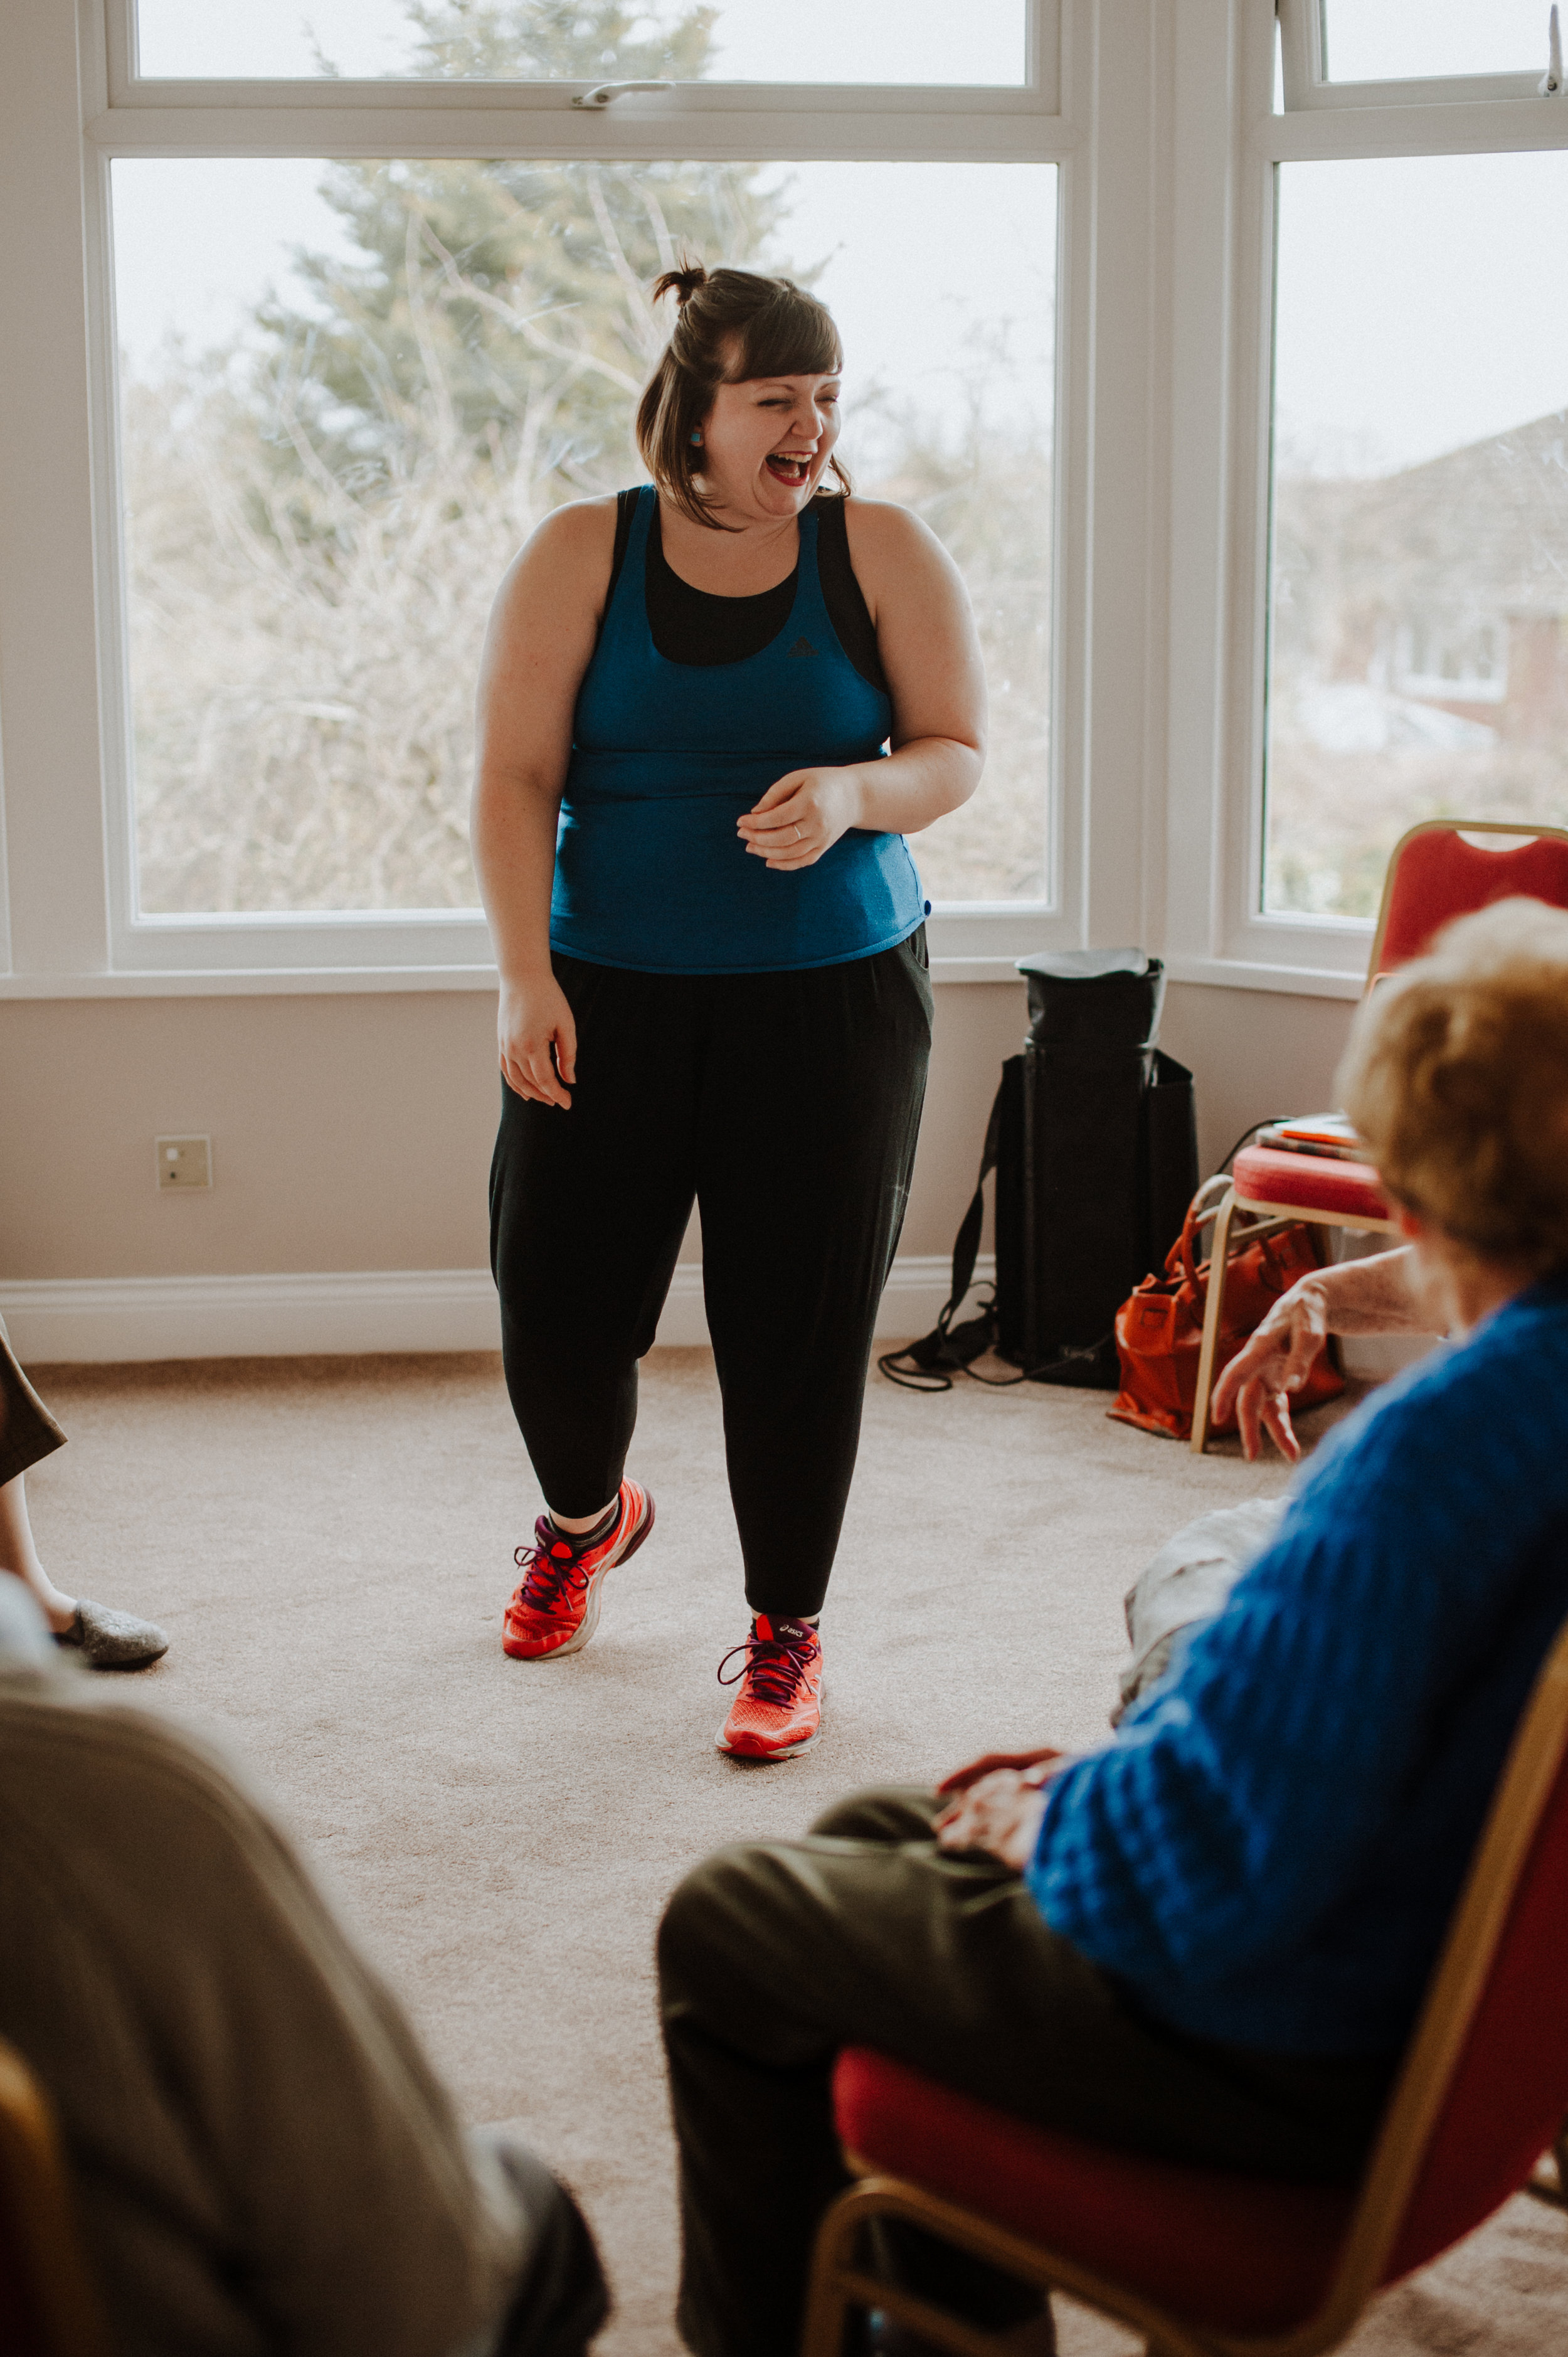 be your own boss running dance sessions in care homes